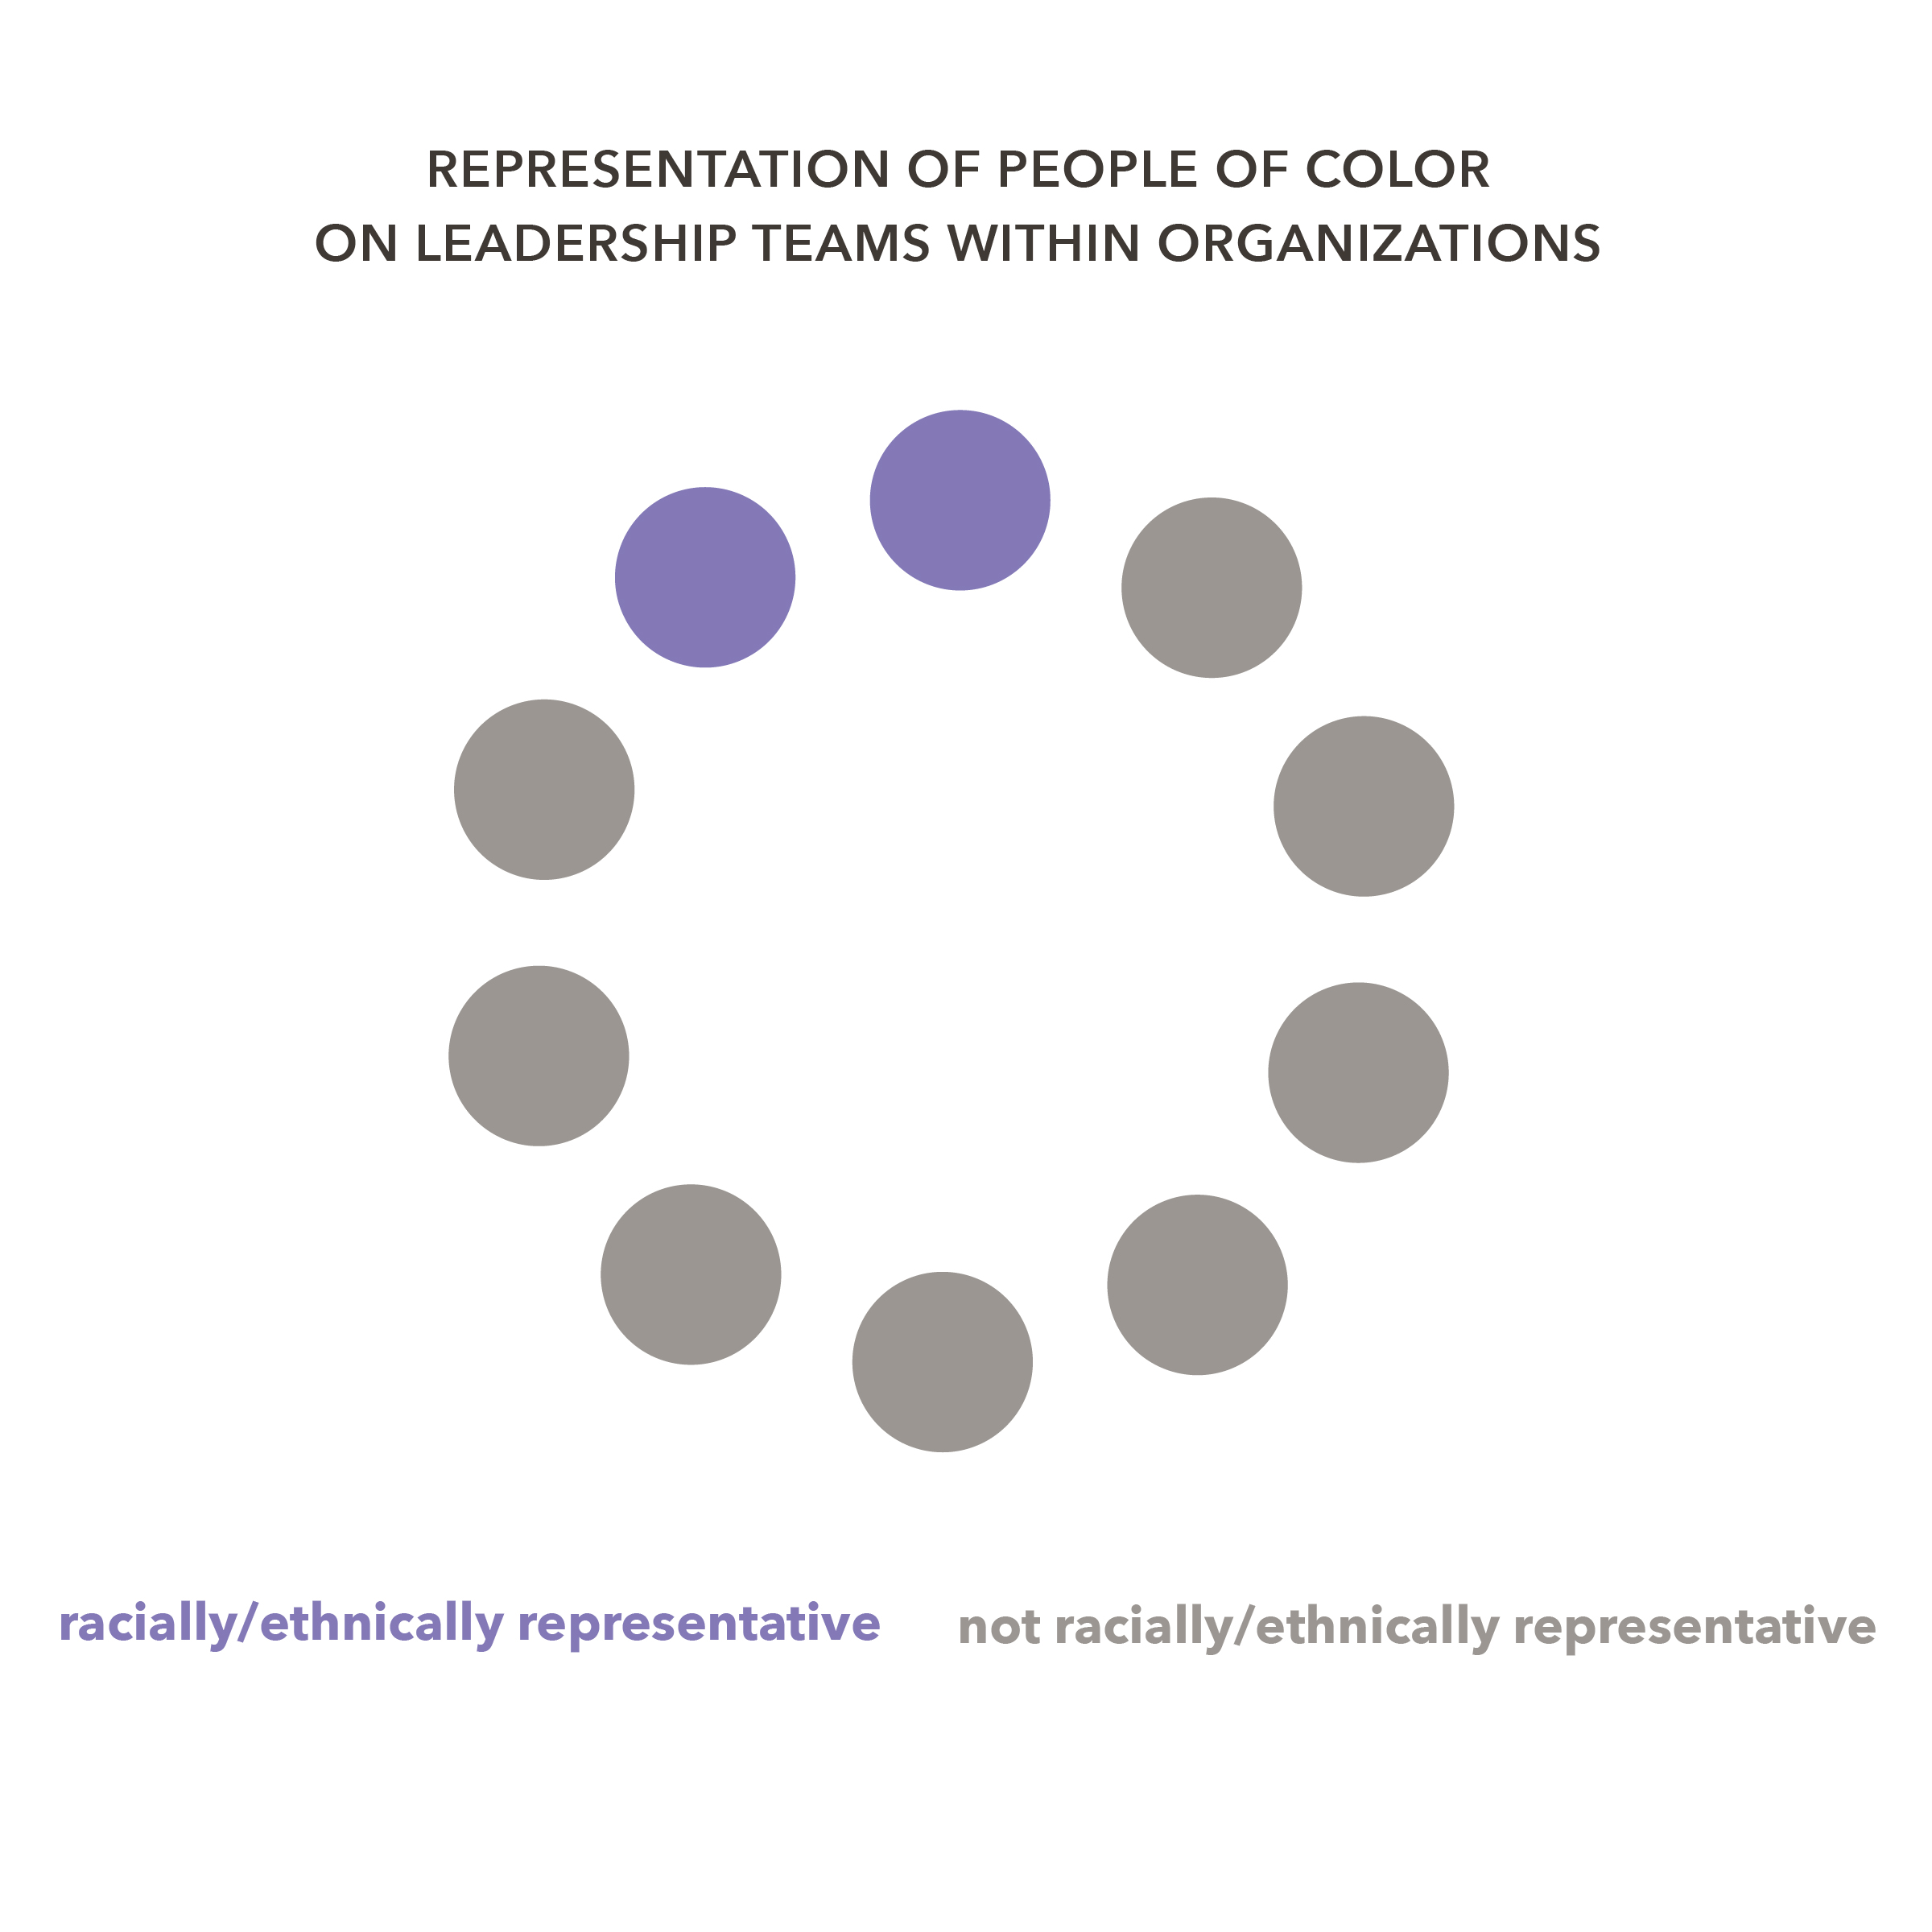 Organizational findings. - Organizational findings. Of the 162 organizations we analyzed, we found that four out of five organizations (80 percent) had leadership teams that did not have a representative number of people of color.